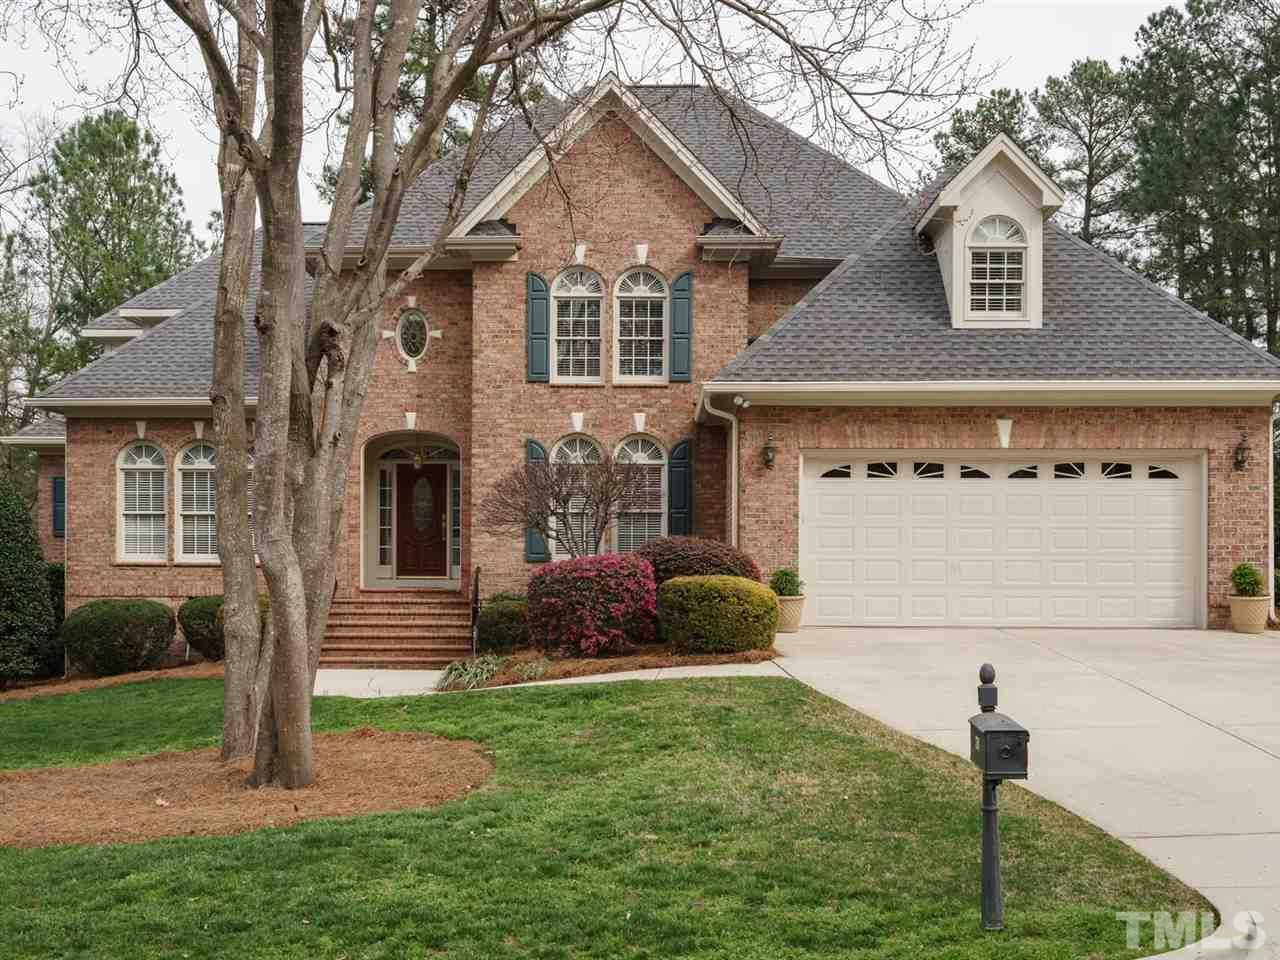 274 HOGANS VALLEY Way, Cary, NC 27513